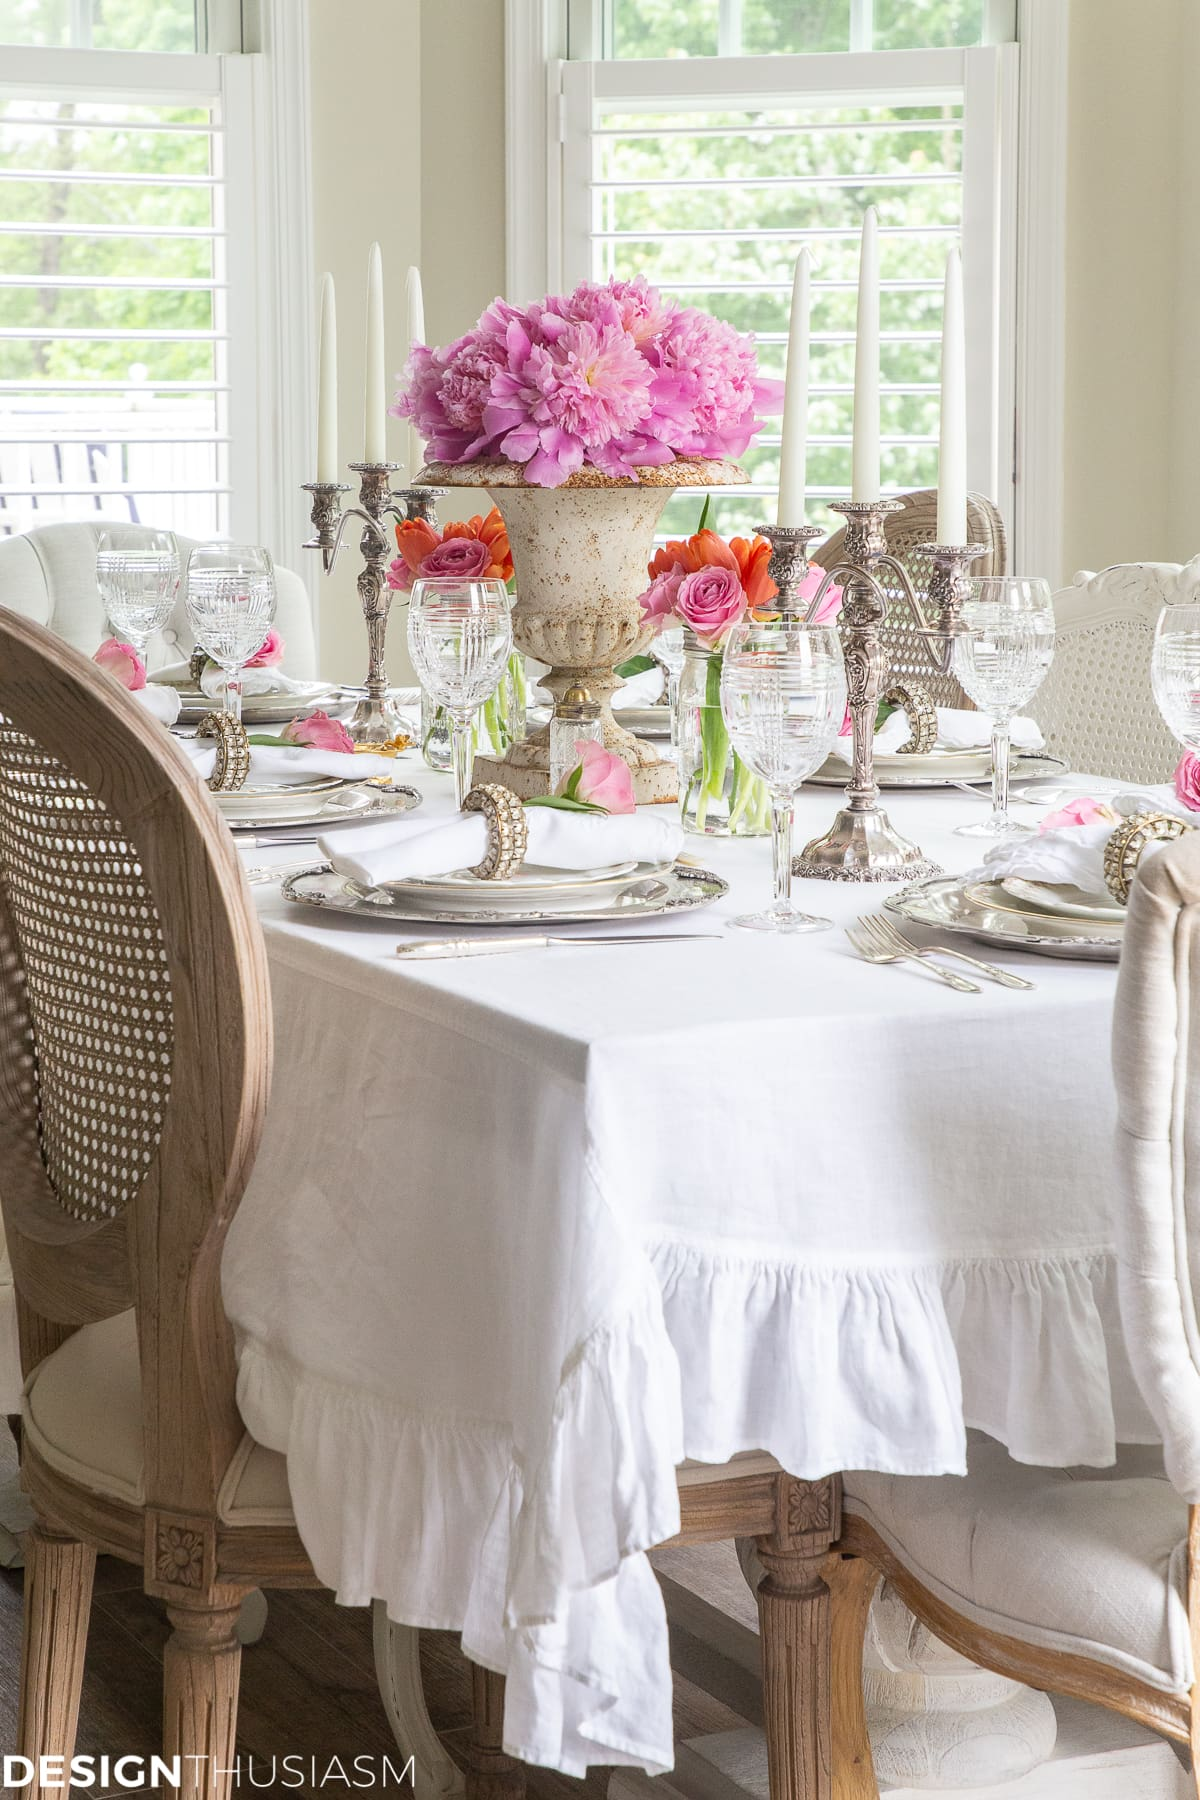 white dining table setting with a ruffle tablecloth